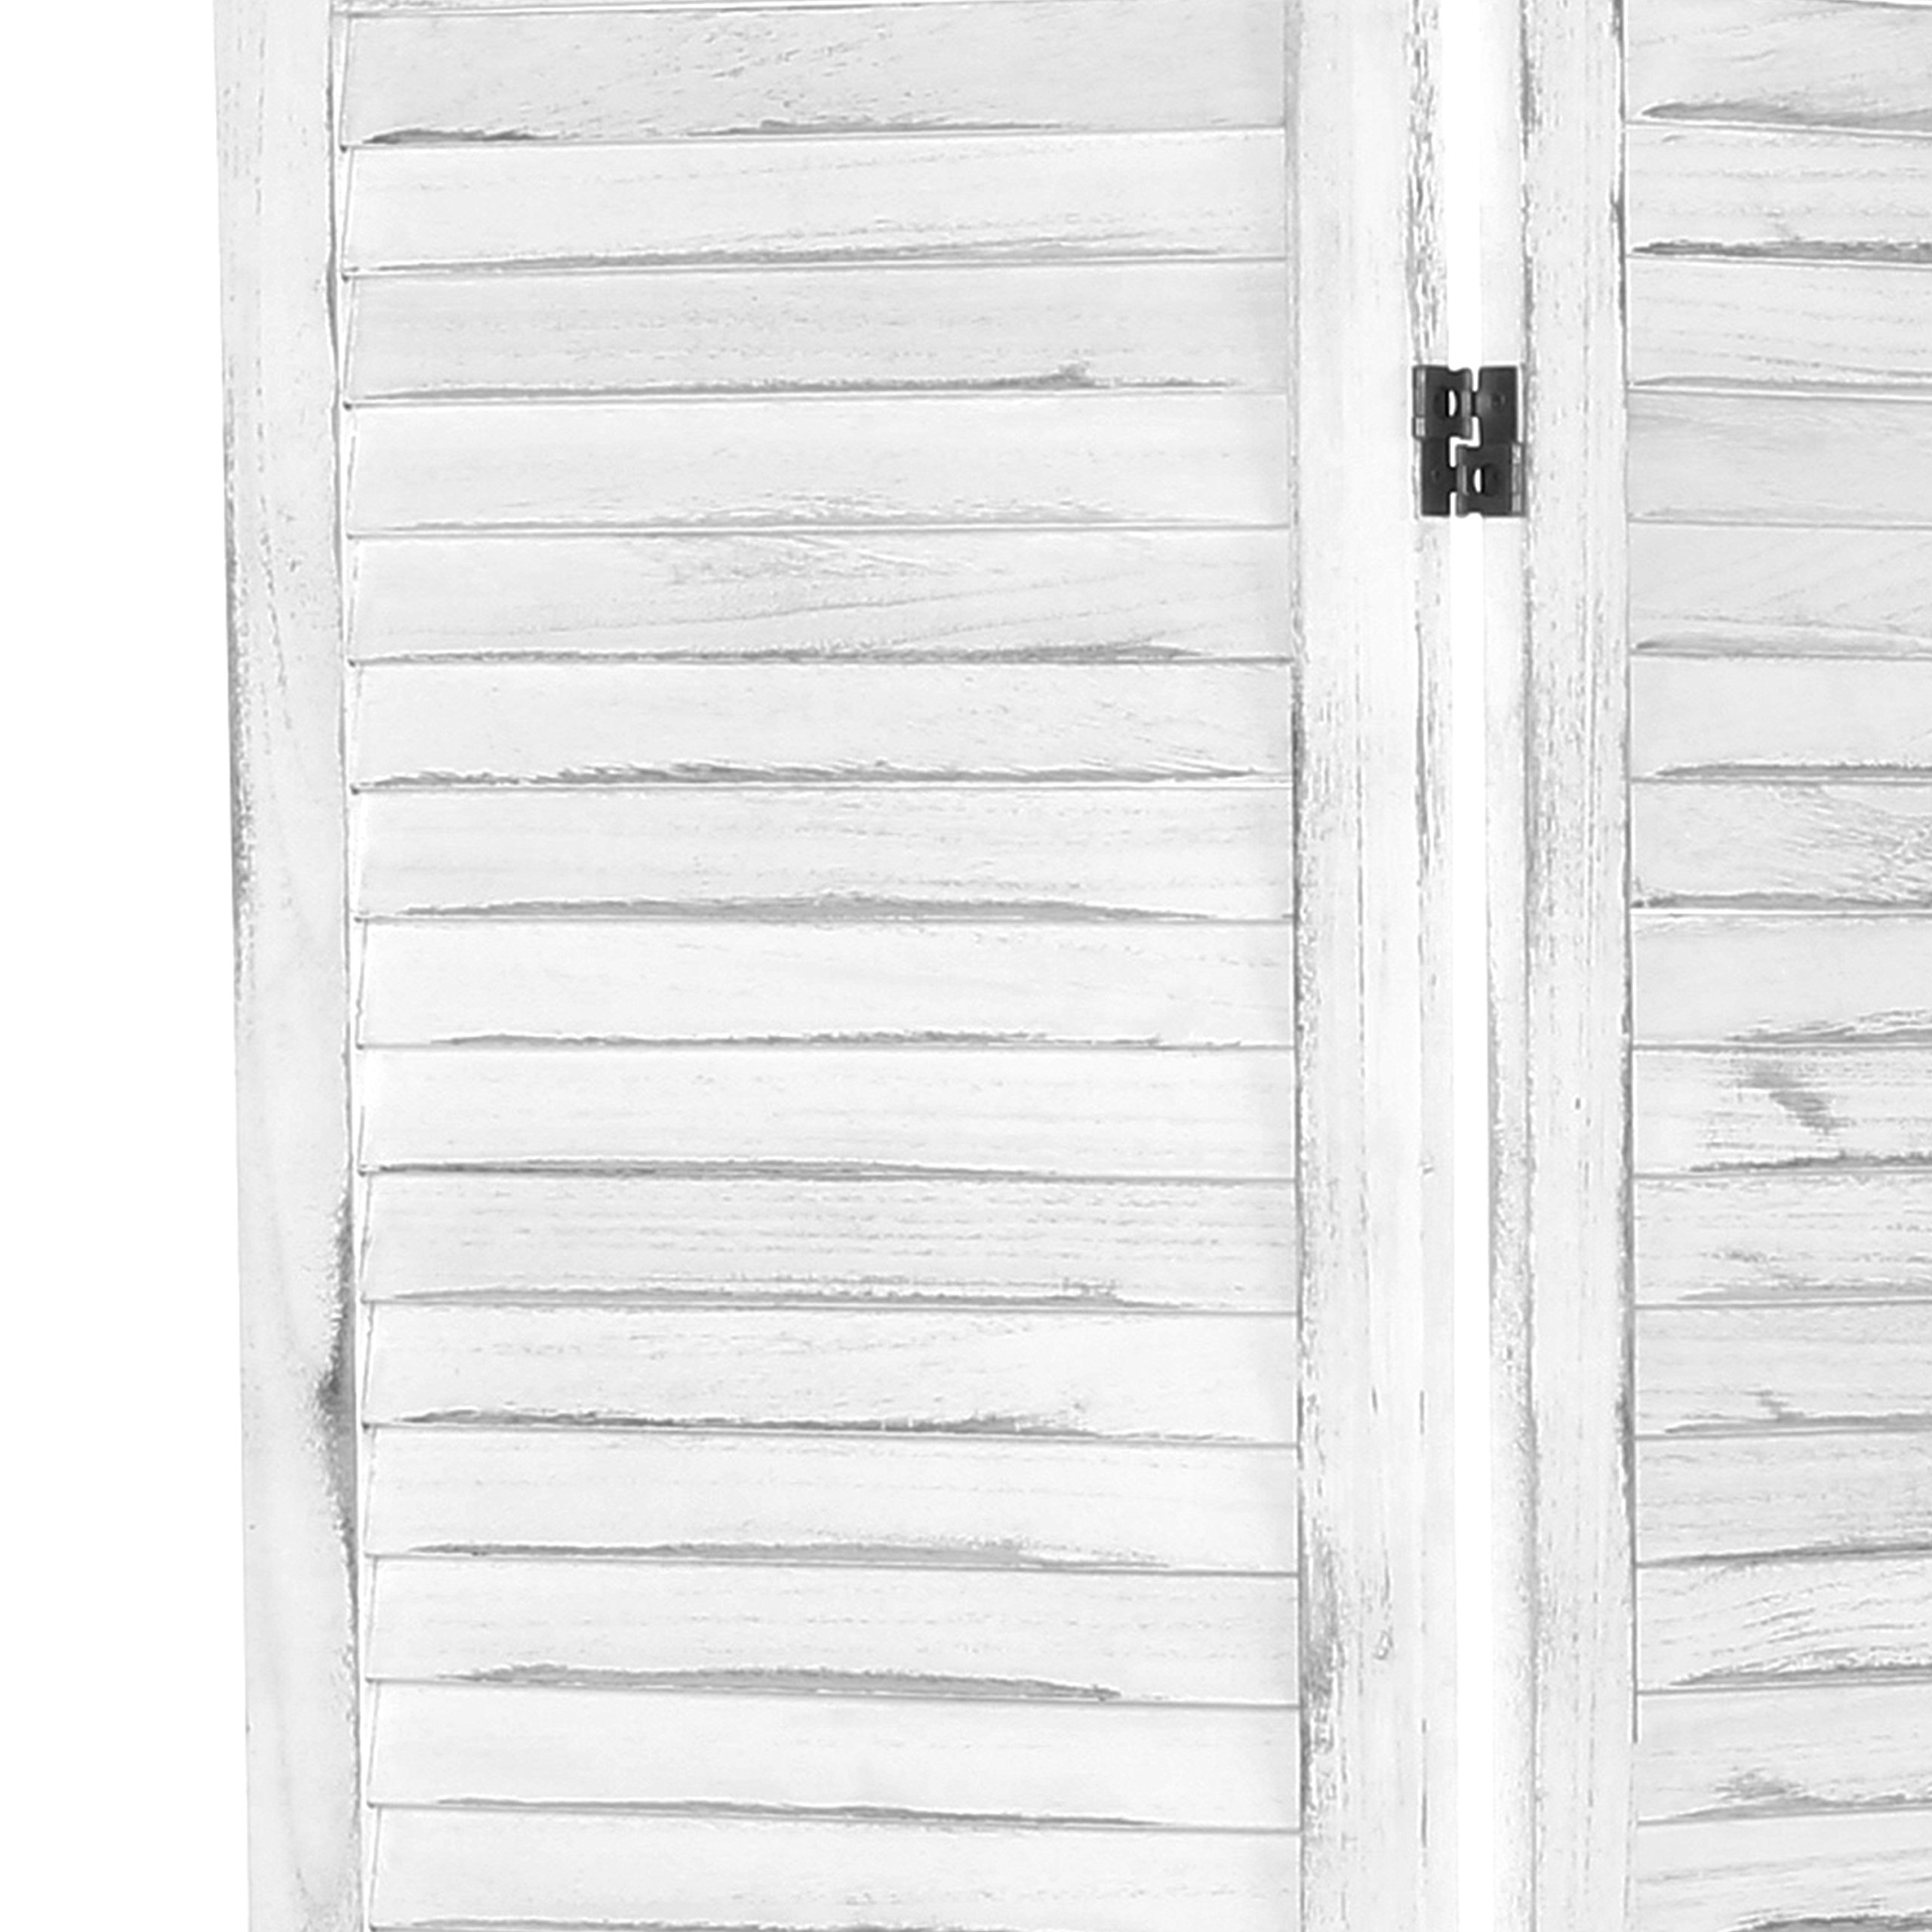 MyGift Whitewashed Wood 3 Panel Screen, Folding Louvered Room Divider by MyGift (Image #5)